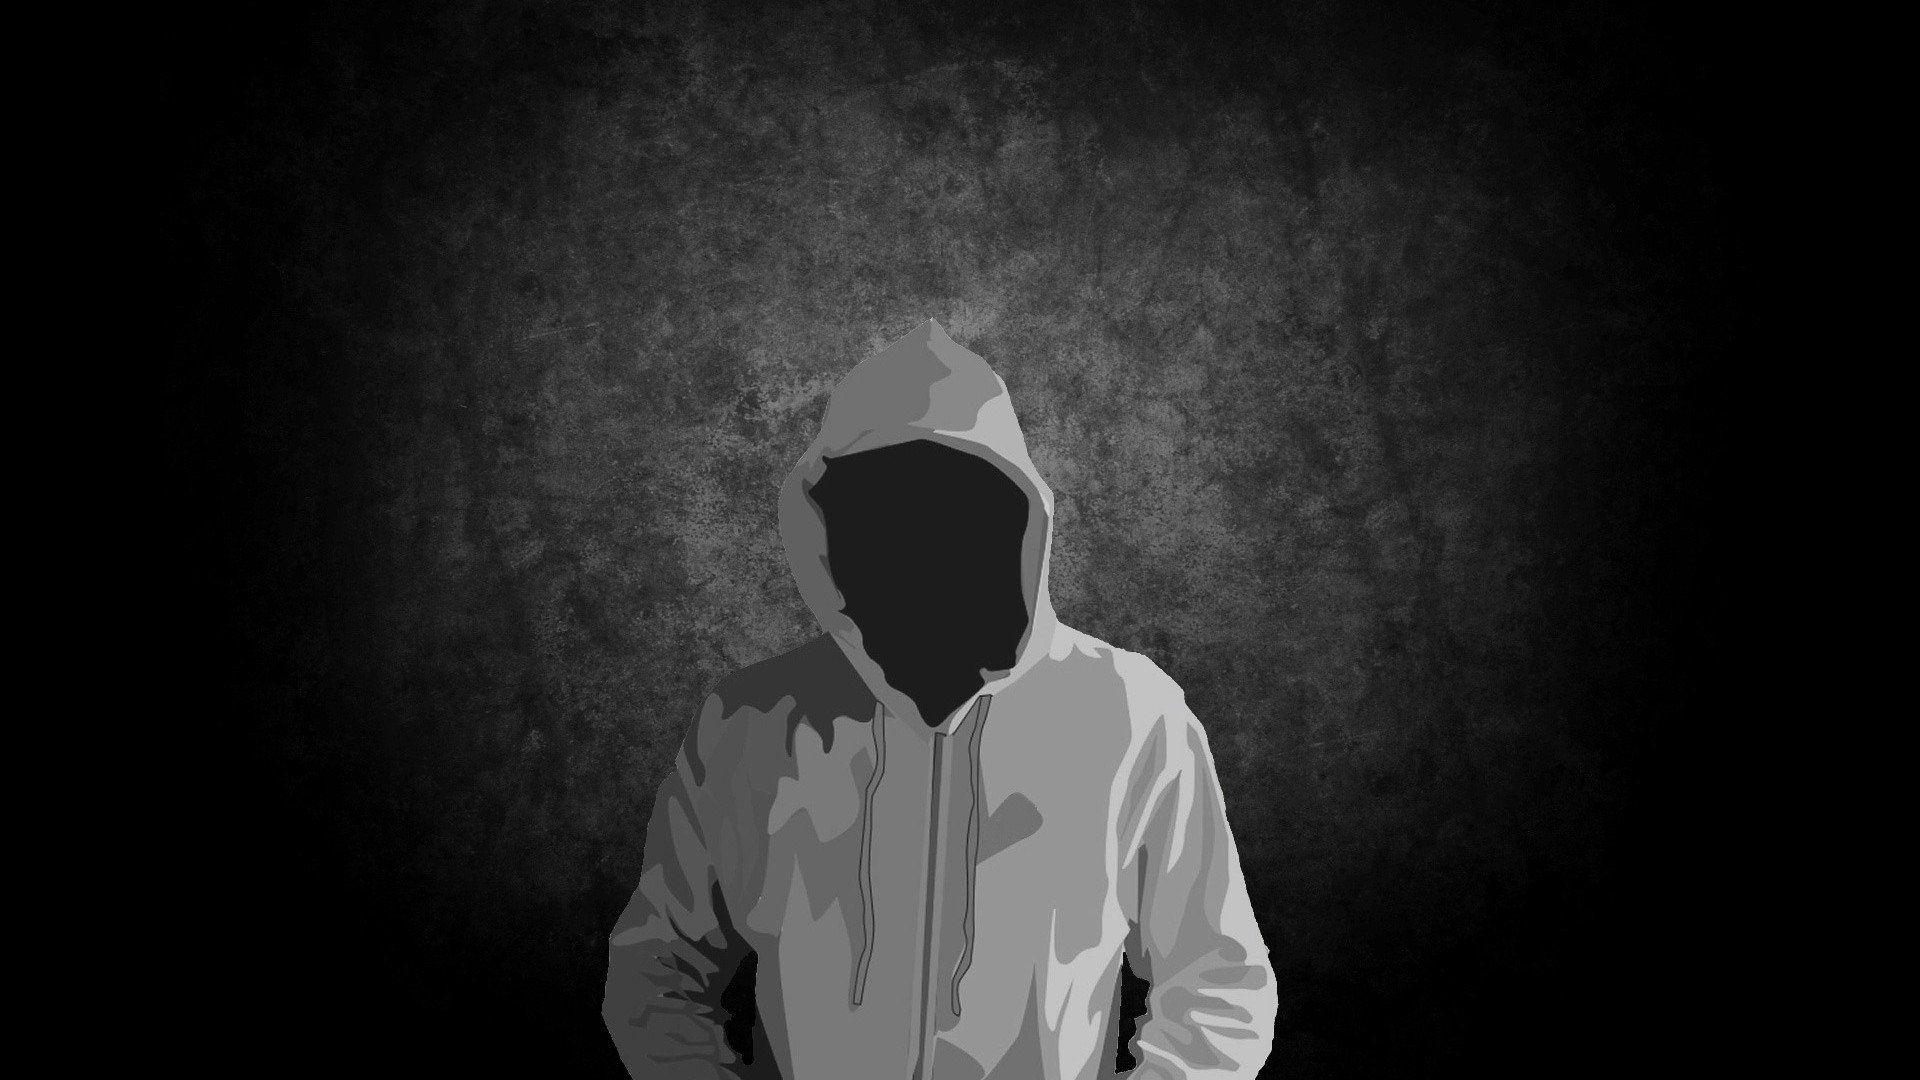 Hood wallpaper for pc